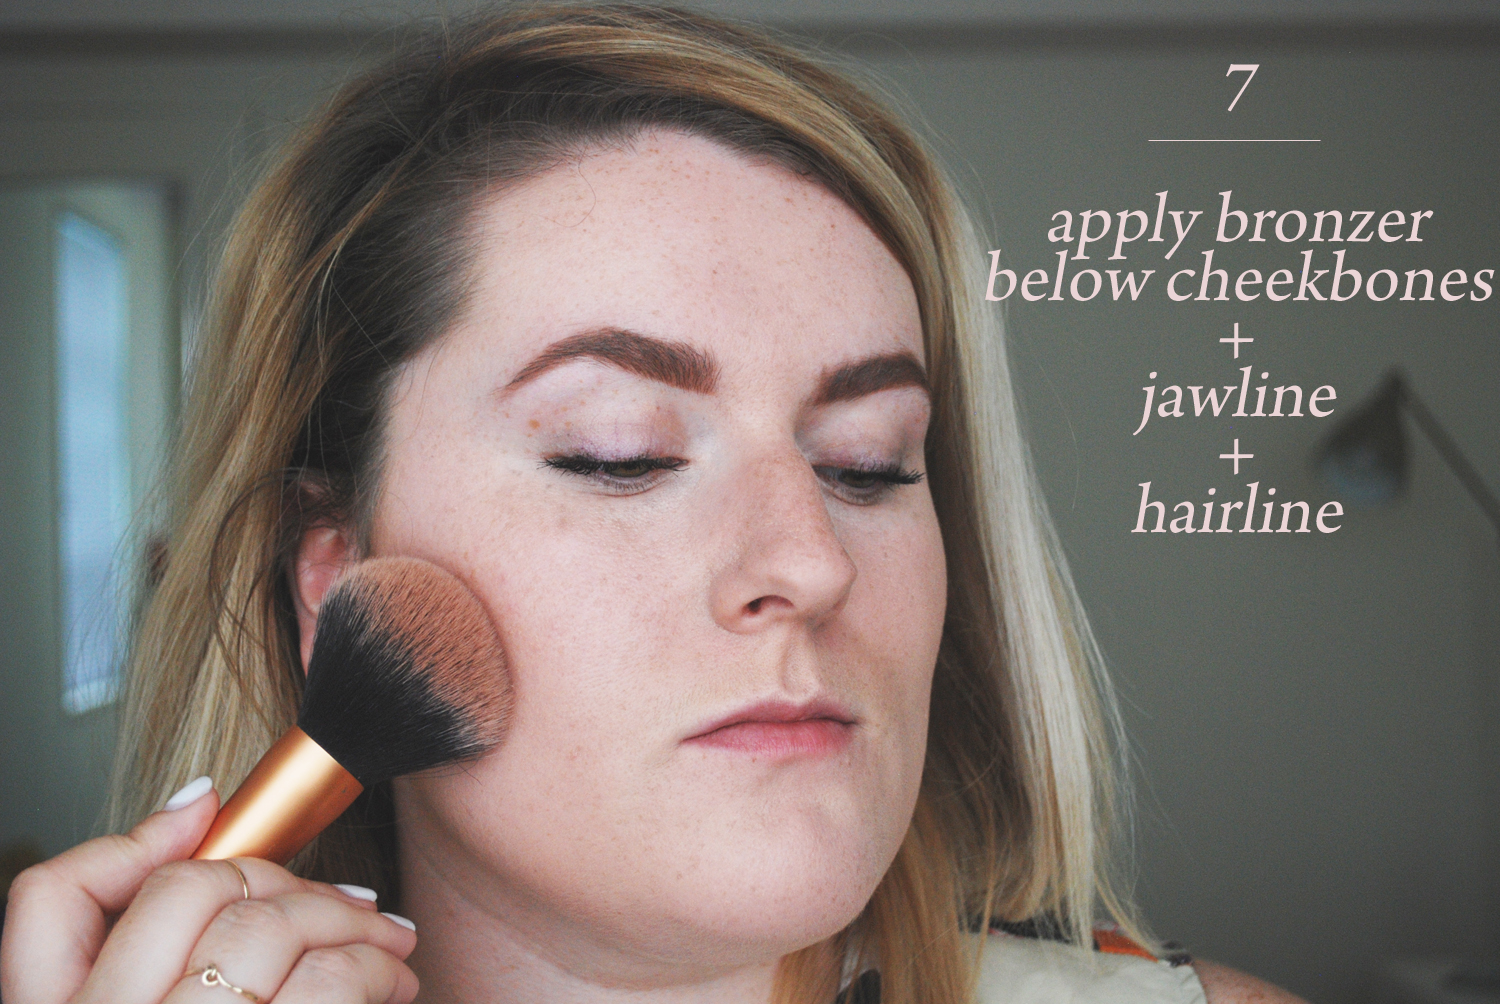 How to sun kissed glow makeup tutorial the wink blog using the same brush apply a shimmery bronzer yep i like to use shimmery bronzers for a glowy look in the hollows of your cheeks under your cheekbones ccuart Images